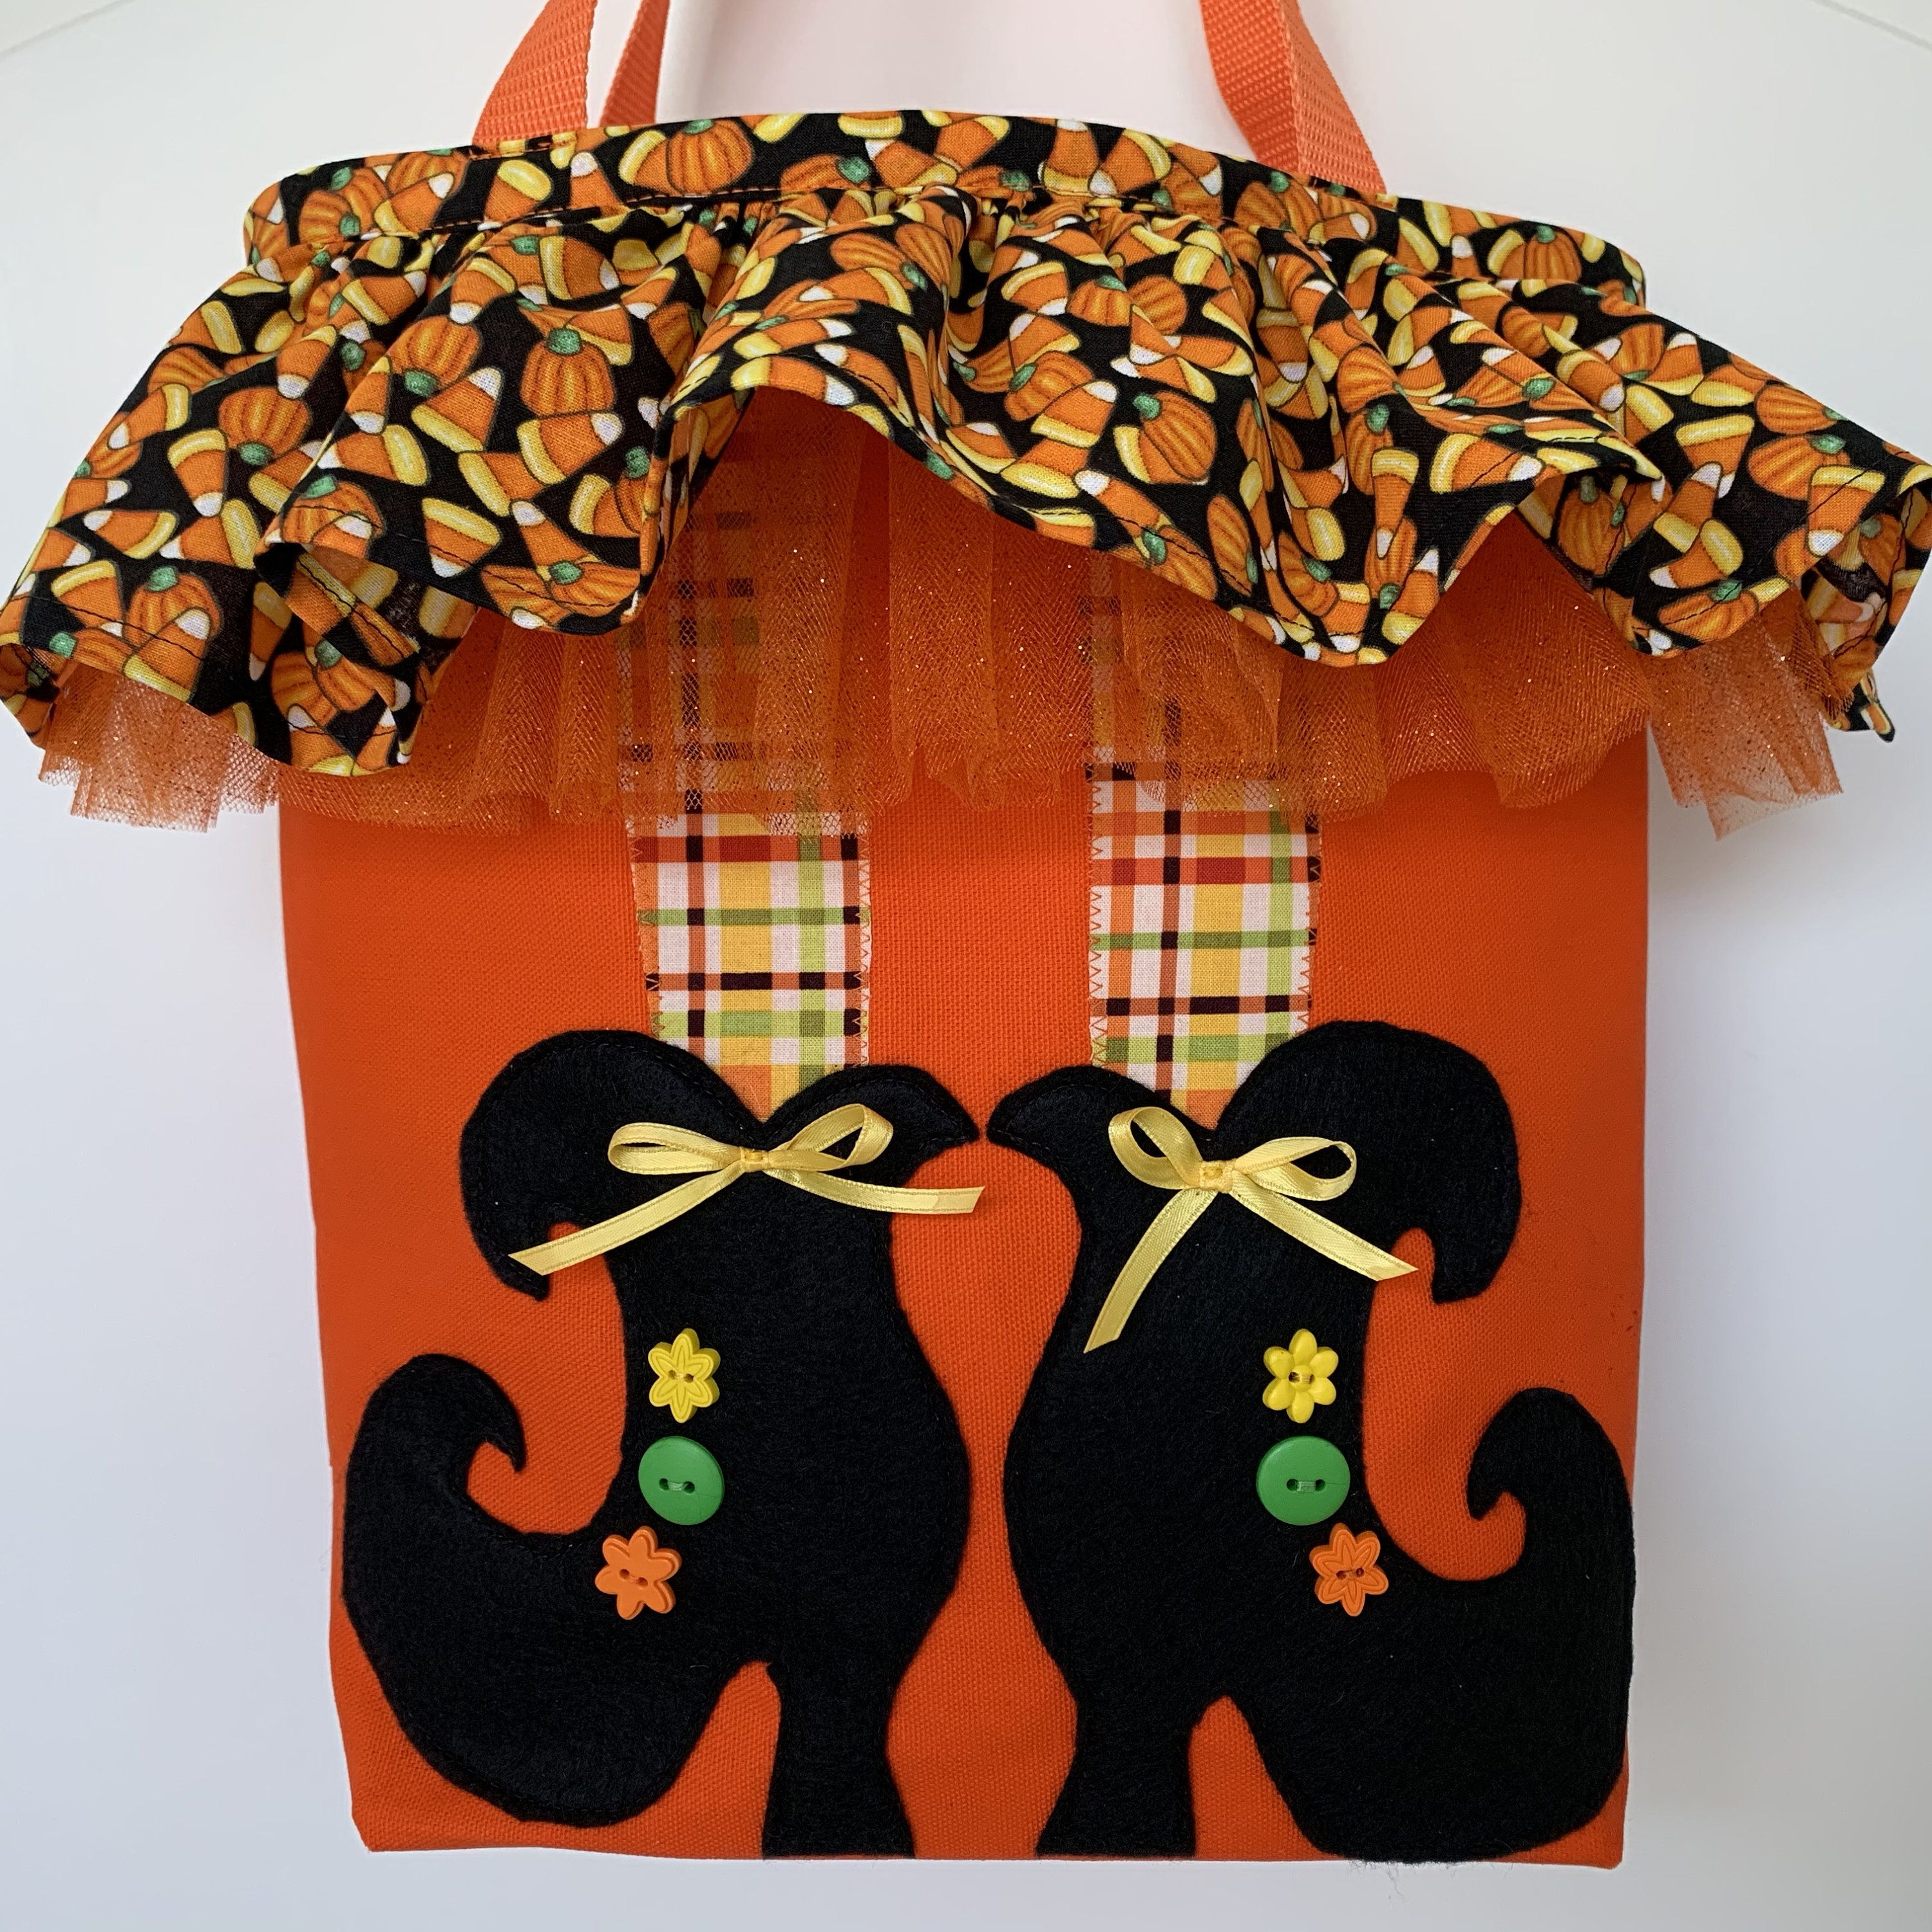 Handmade orange canvas trickortreat tote bag with